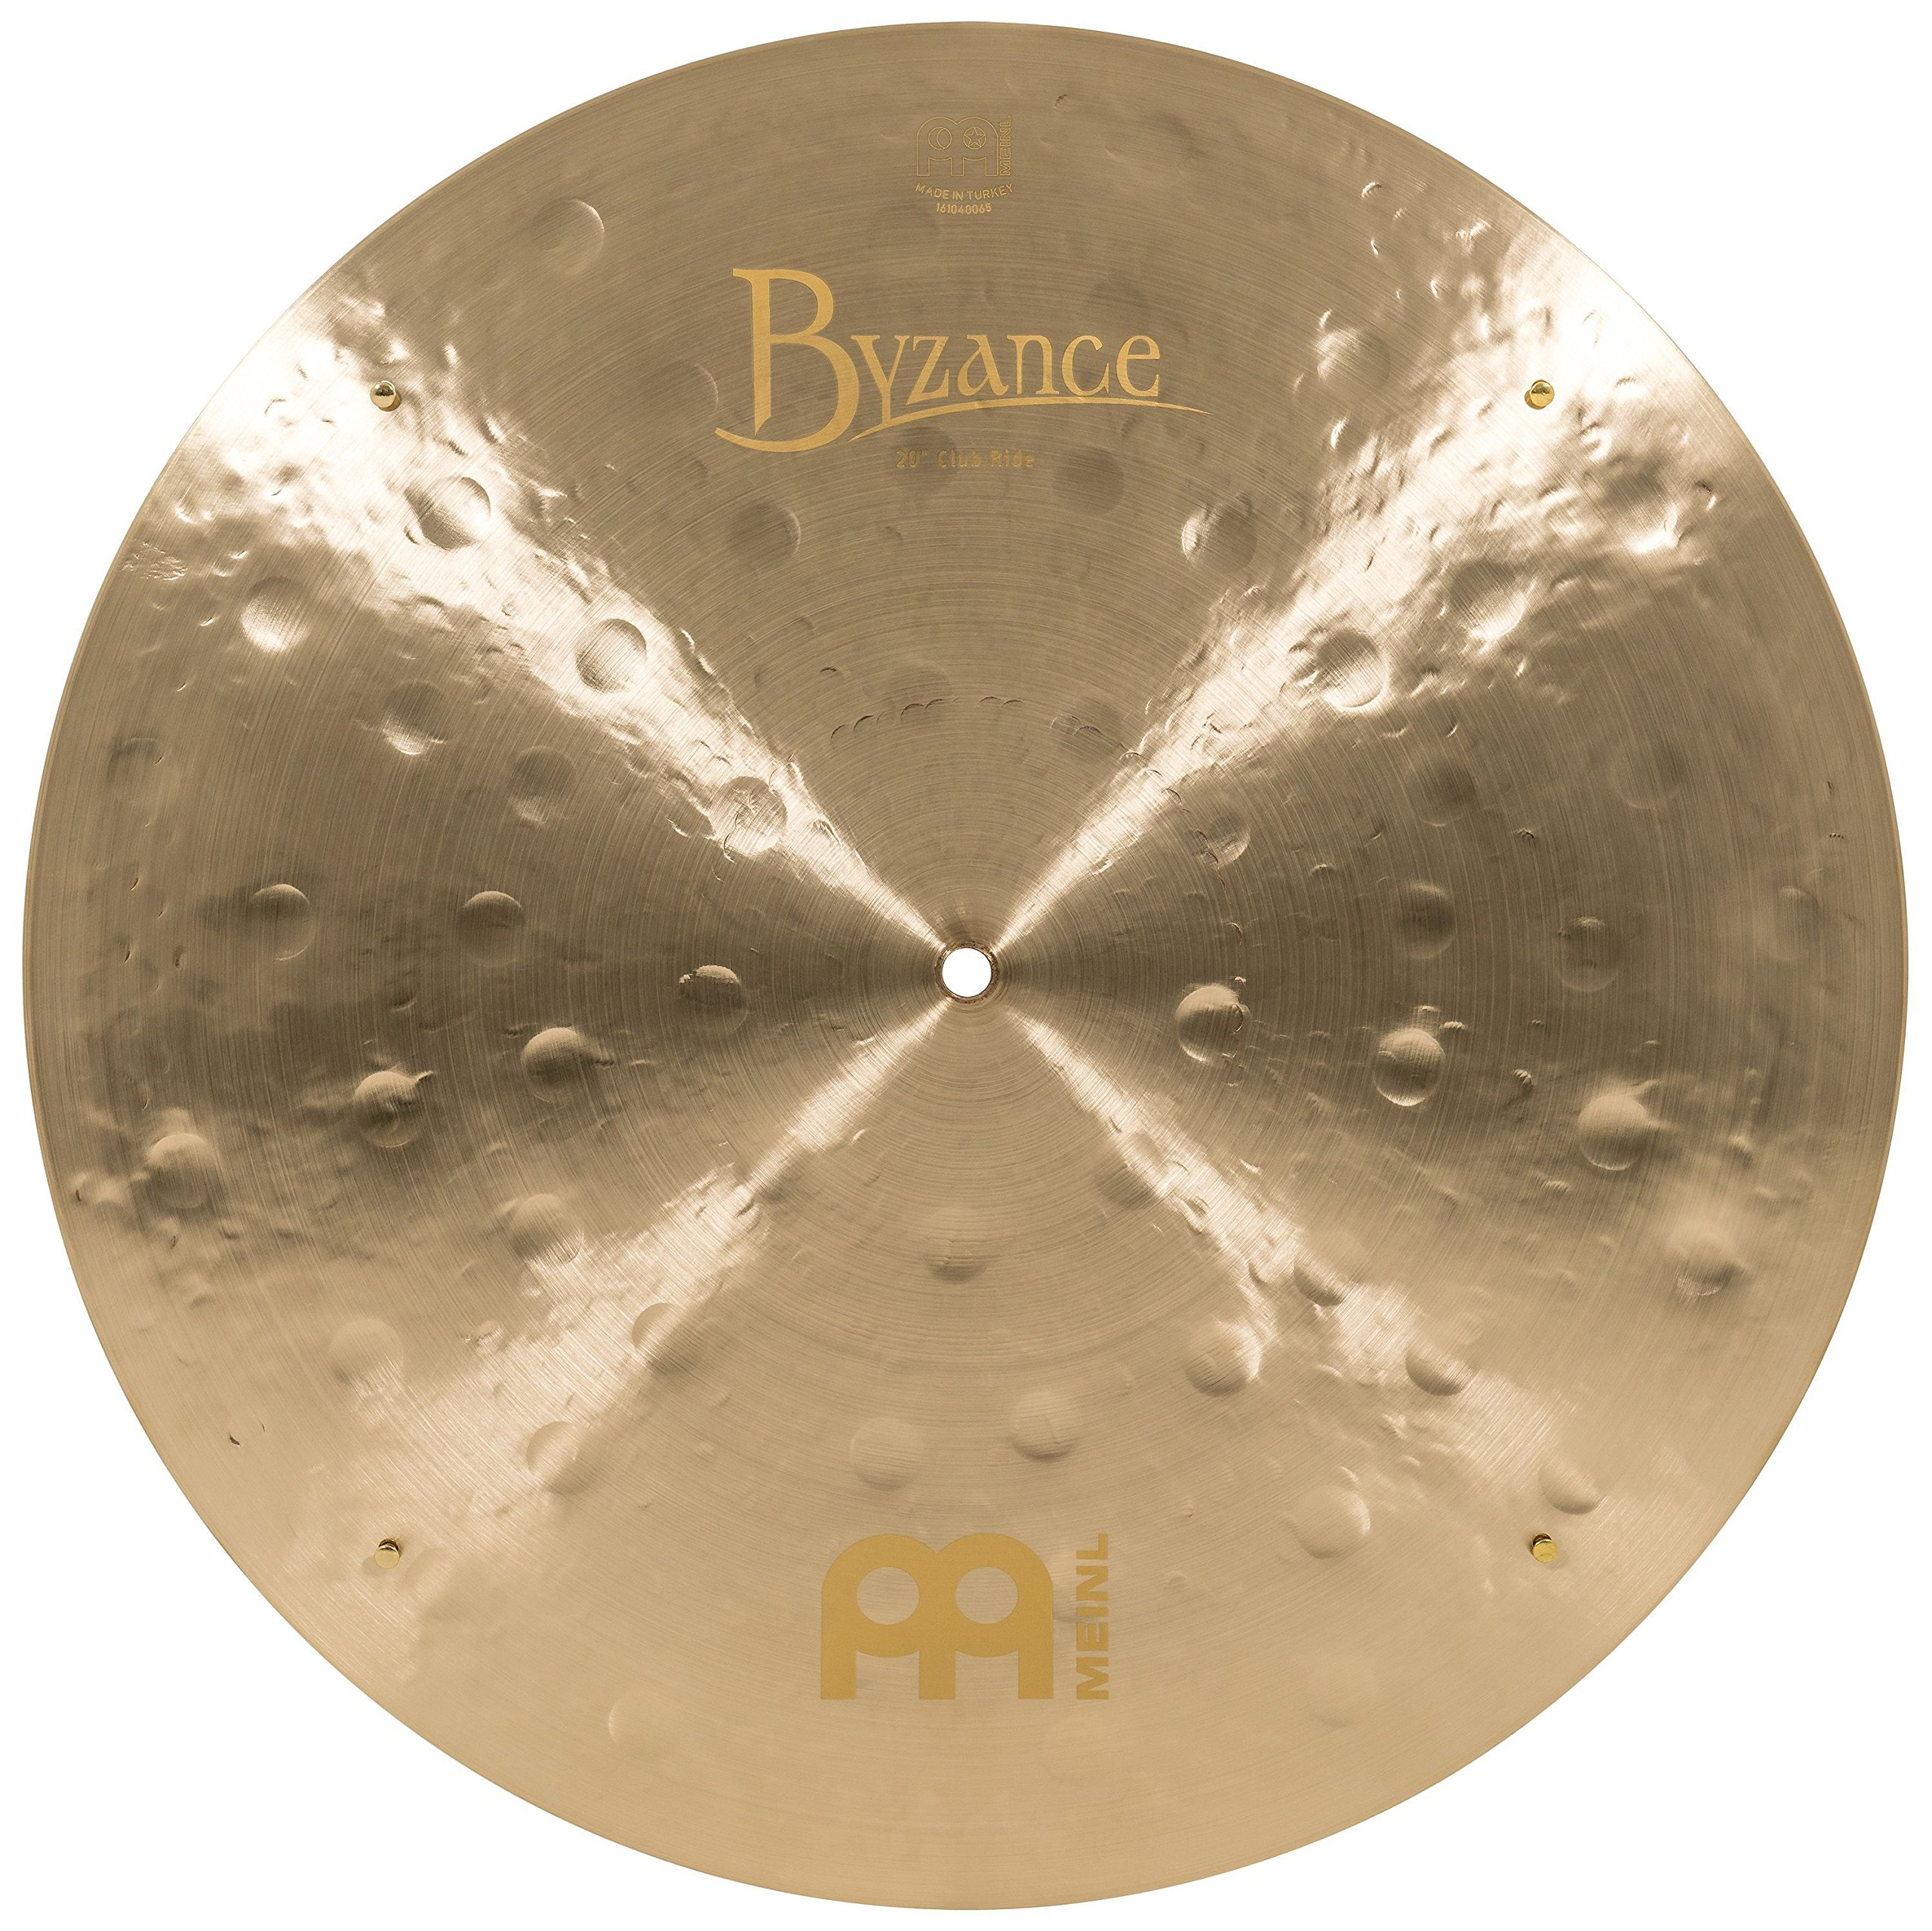 Meinl Cymbals B20JCR Byzance 20-Inch Jazz Club Flat Ride Cymbal with Rivets (VIDEO) by Meinl Cymbals